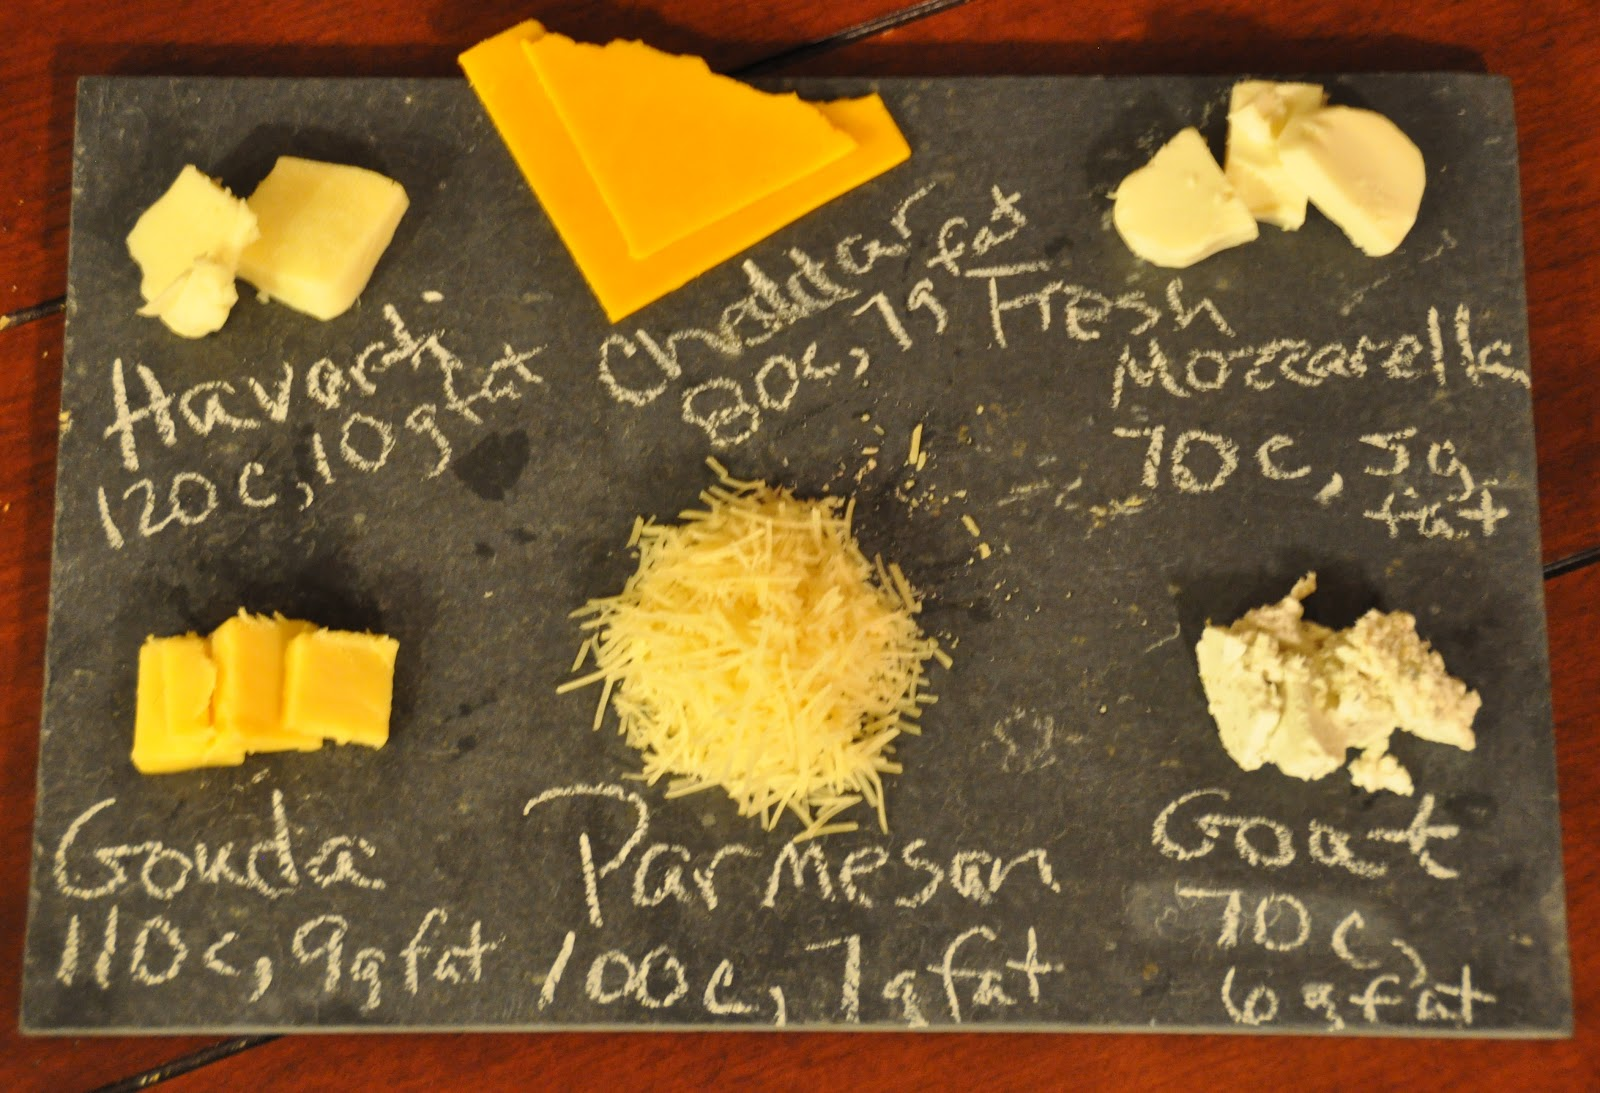 how much is 1 oz of cheese